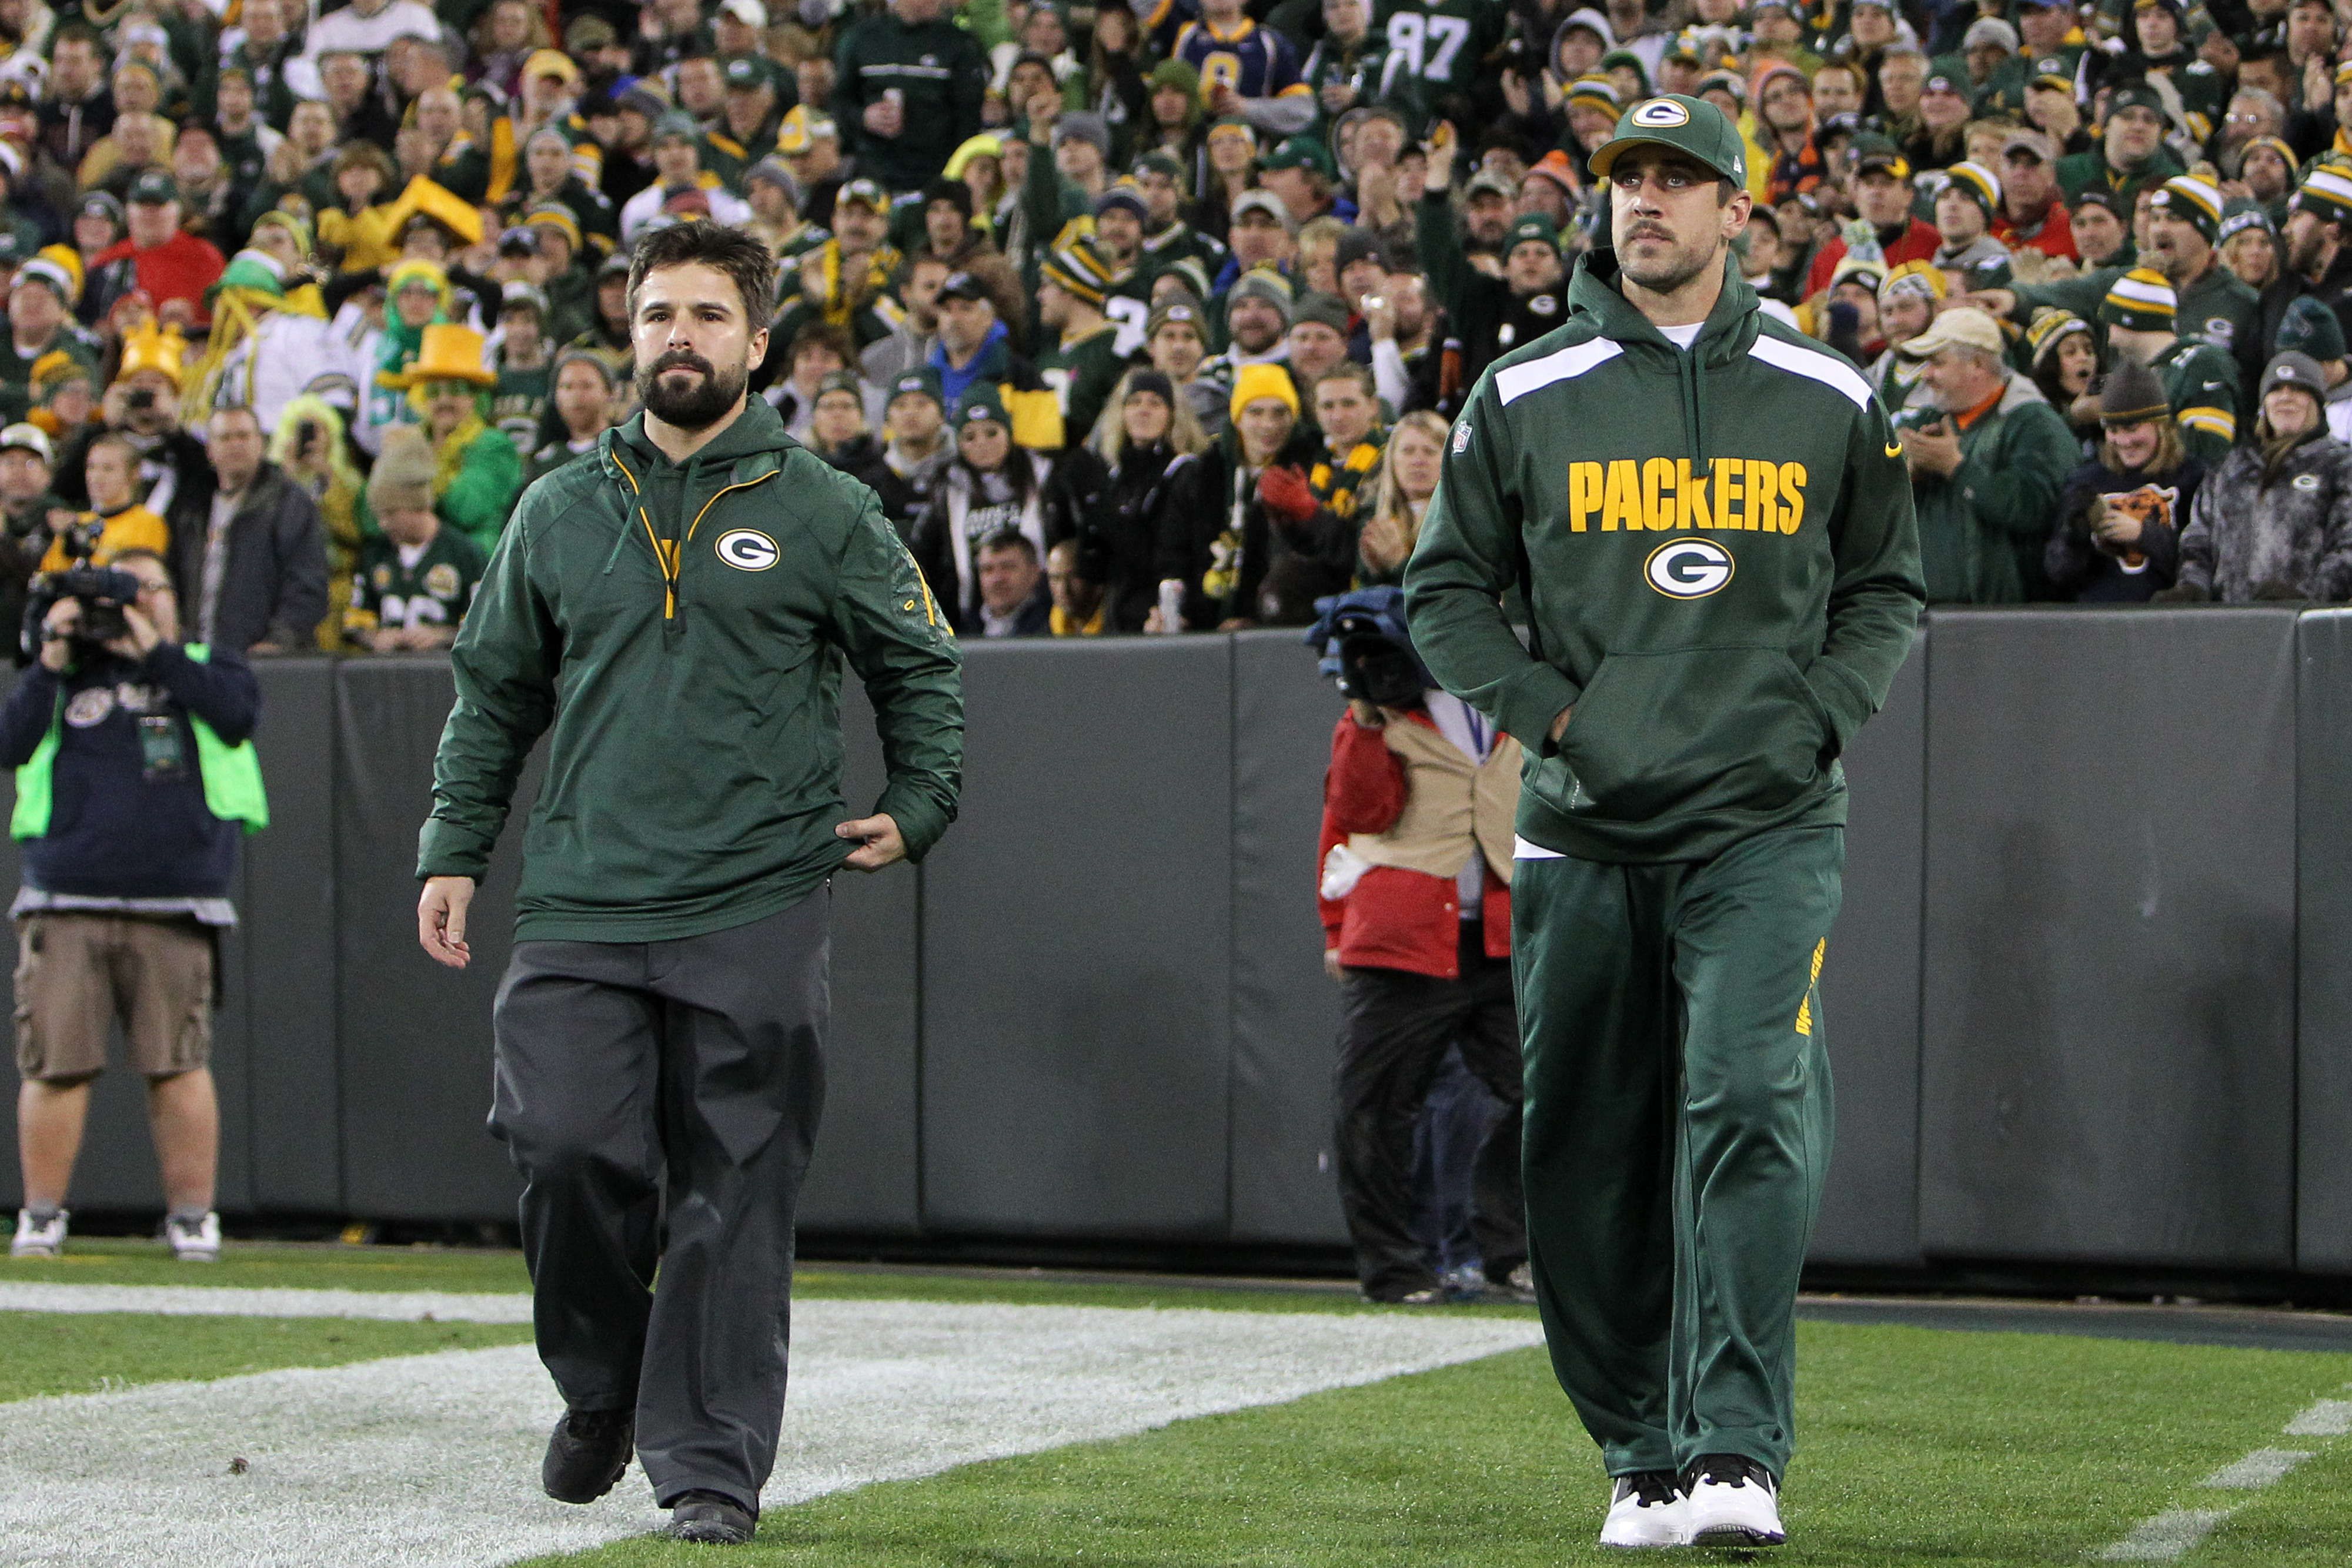 The injury to Aaron Rodgers has many expecting the Giants to win its fourth game in a row.